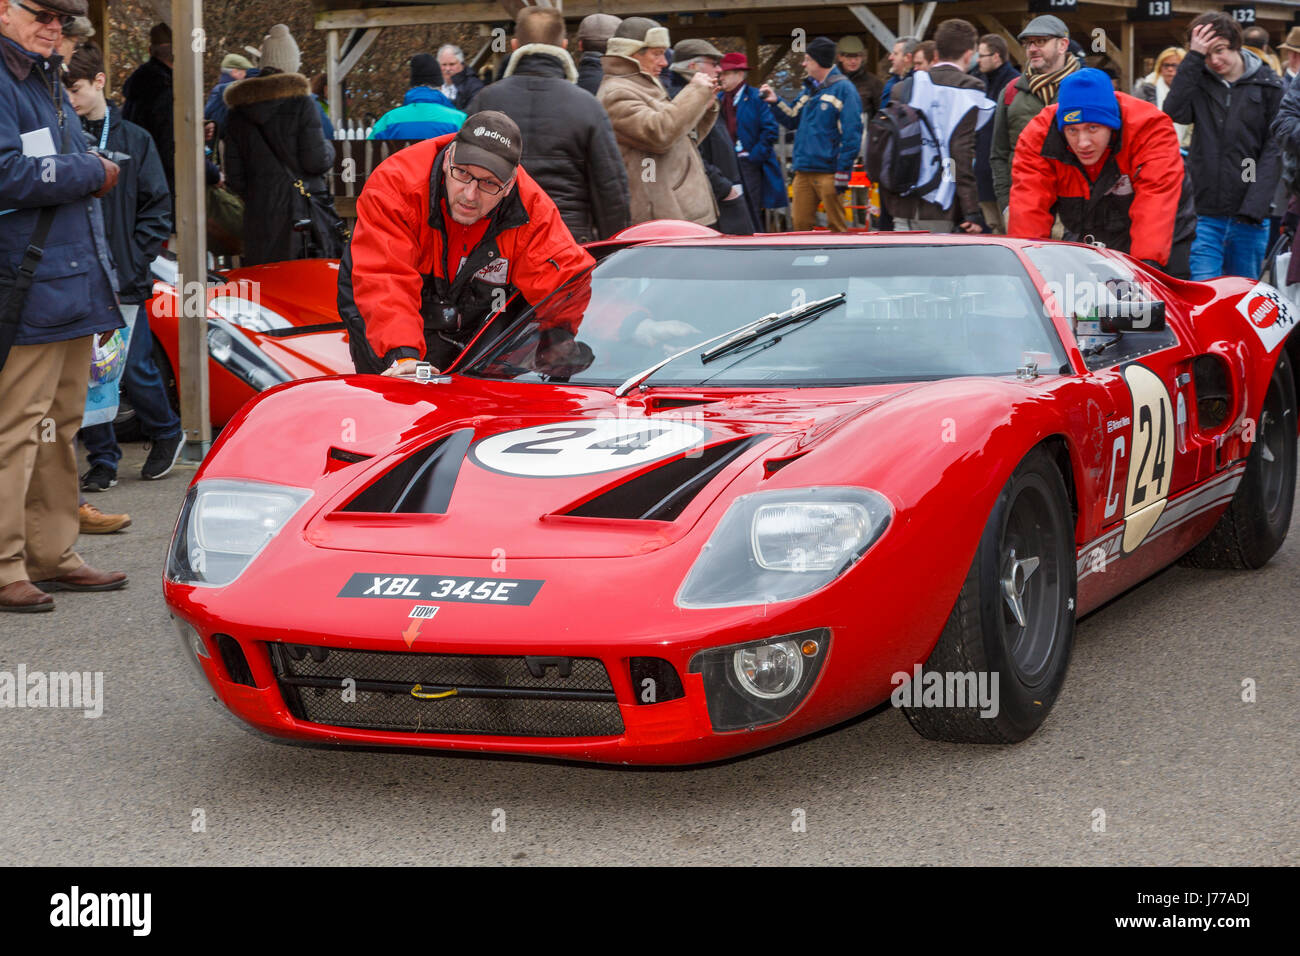 1967 Ford GT40 of Richard Meins and Rob Huff in the paddock at Goodwood GRRC 74th Members Meeting, Sussex, UK. Stock Photo